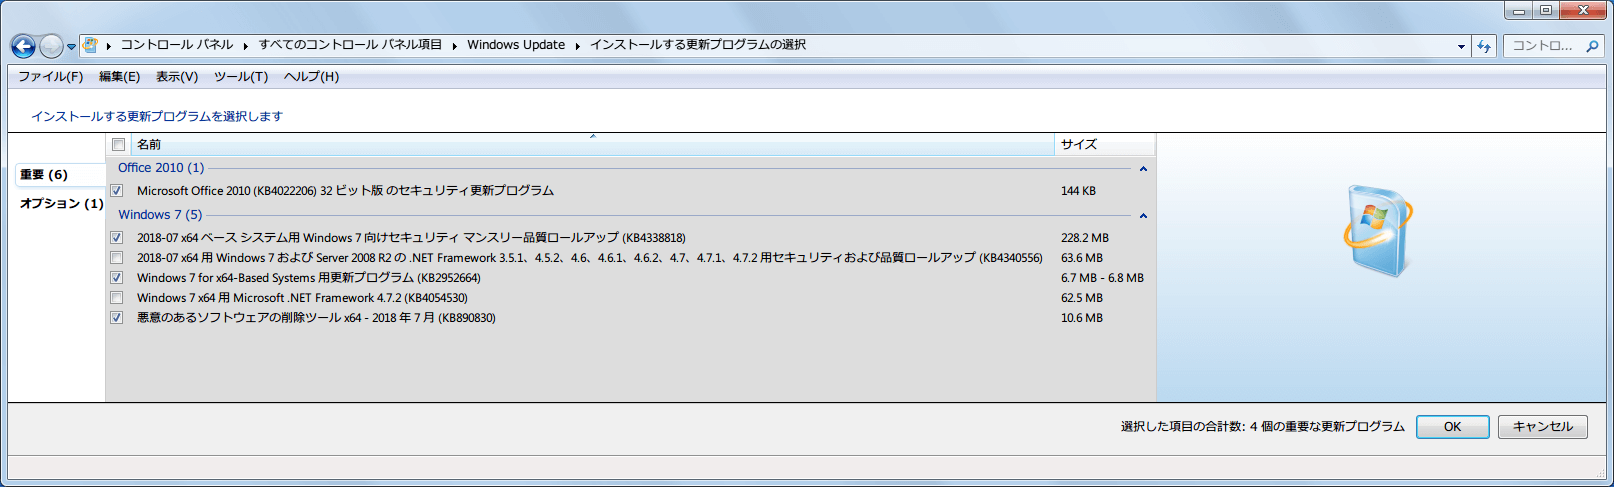 Windows 7 64bit Windows Update 重要 2018年7月分リスト